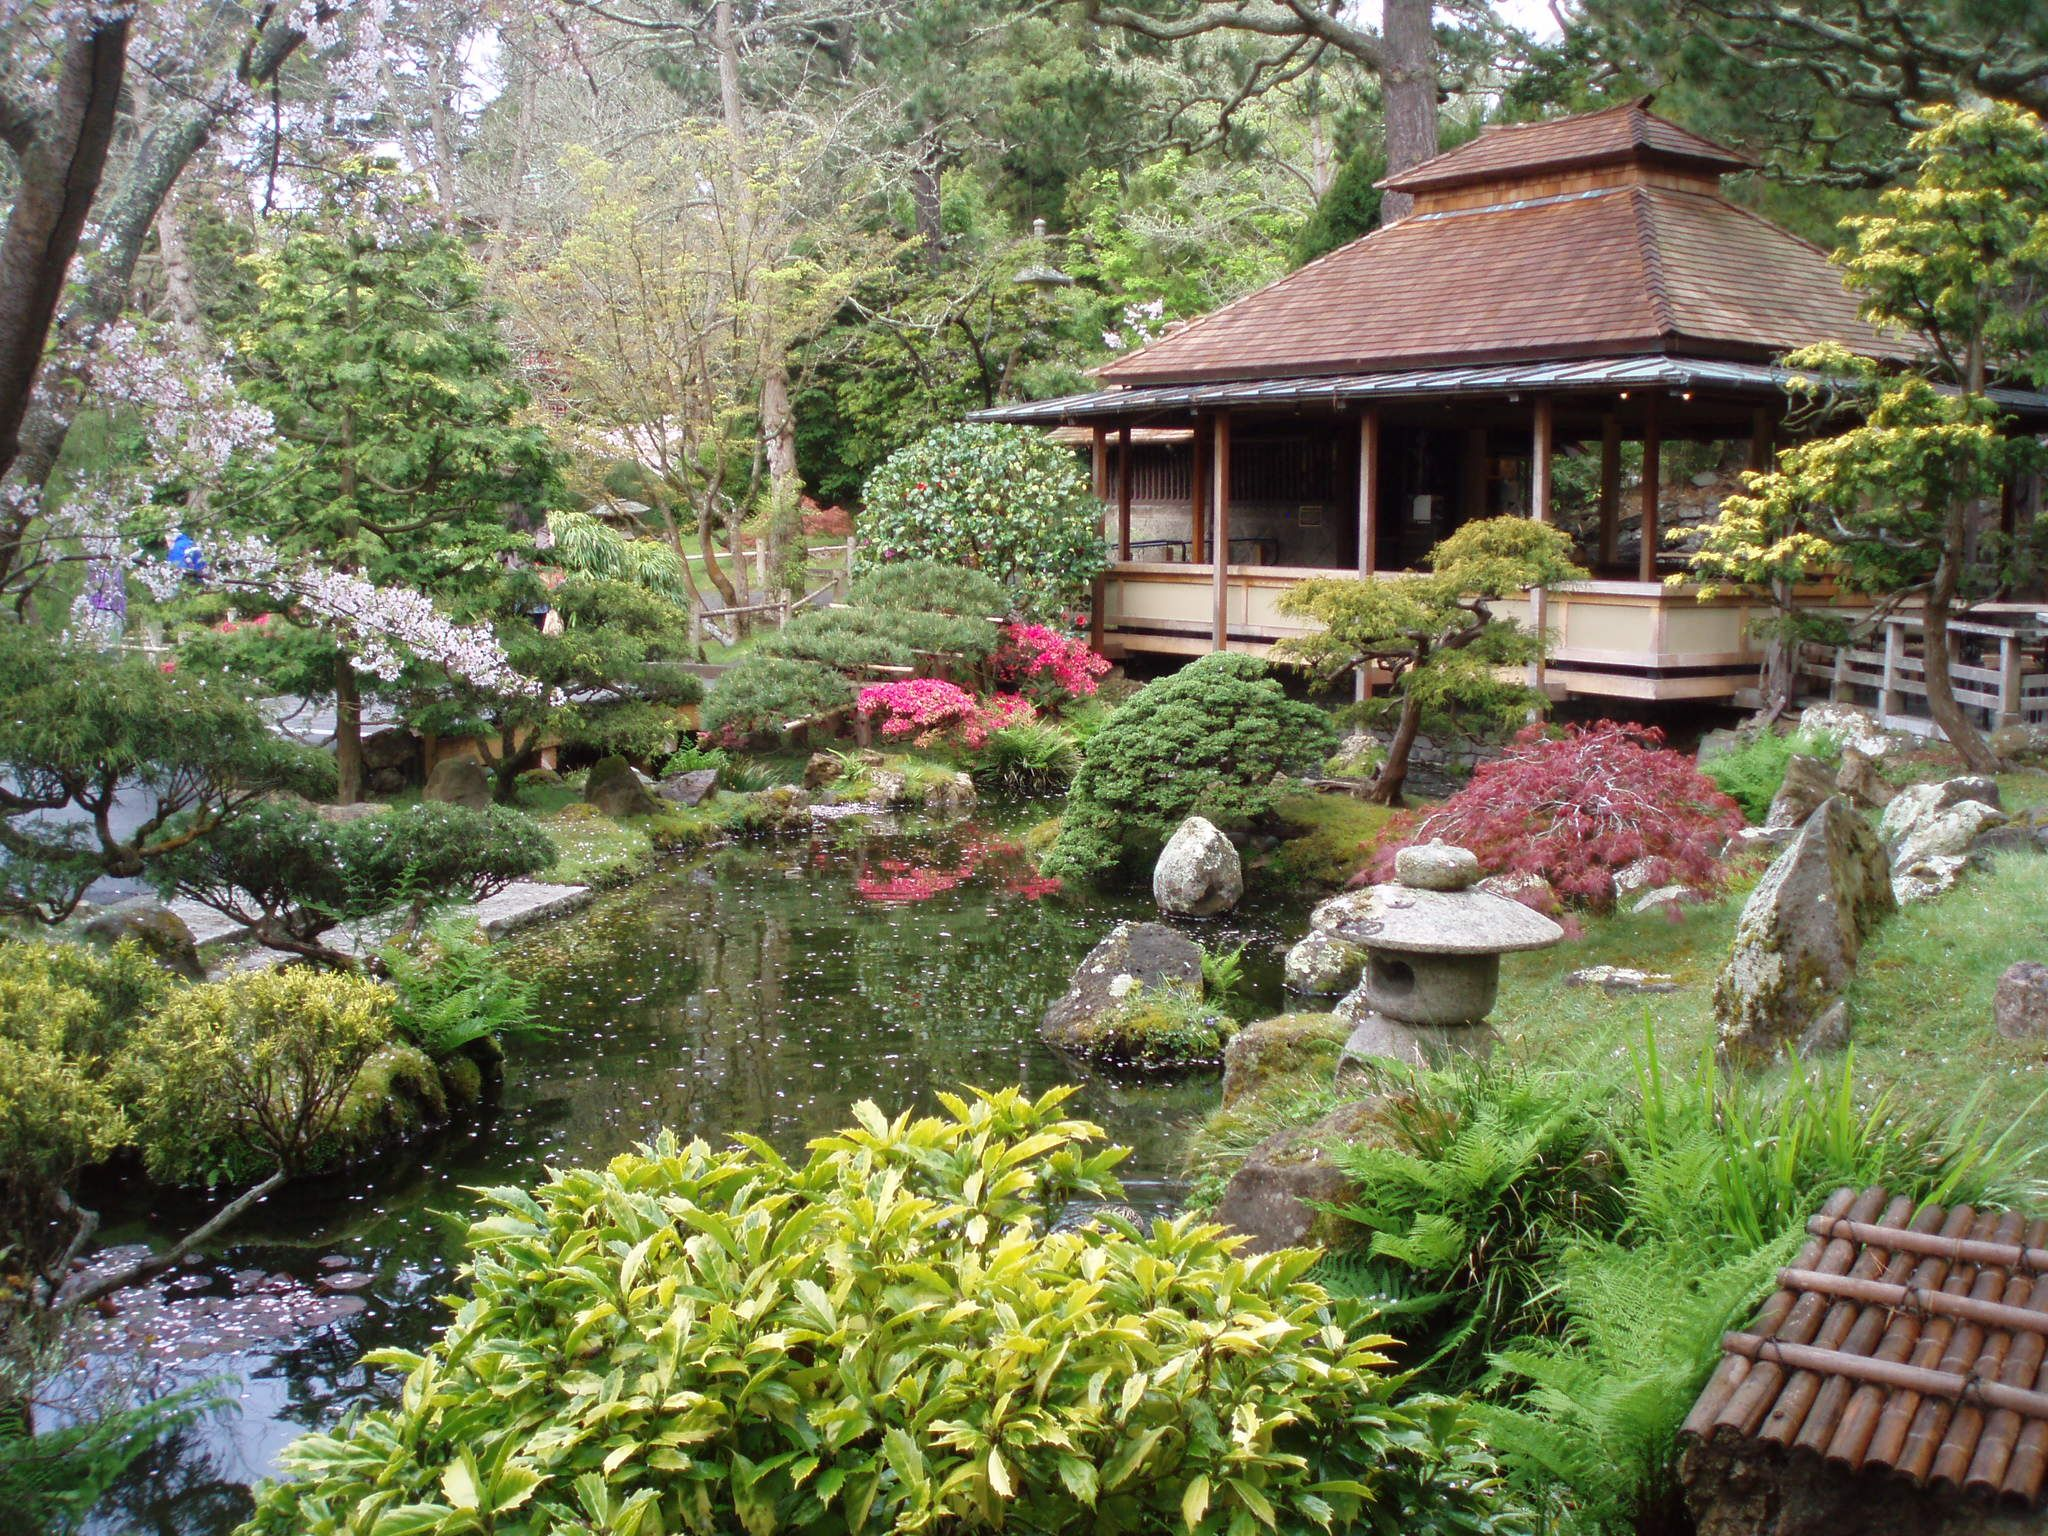 Japanese Tea Garden Wallpaper Wide with Wallpaper High Resolution